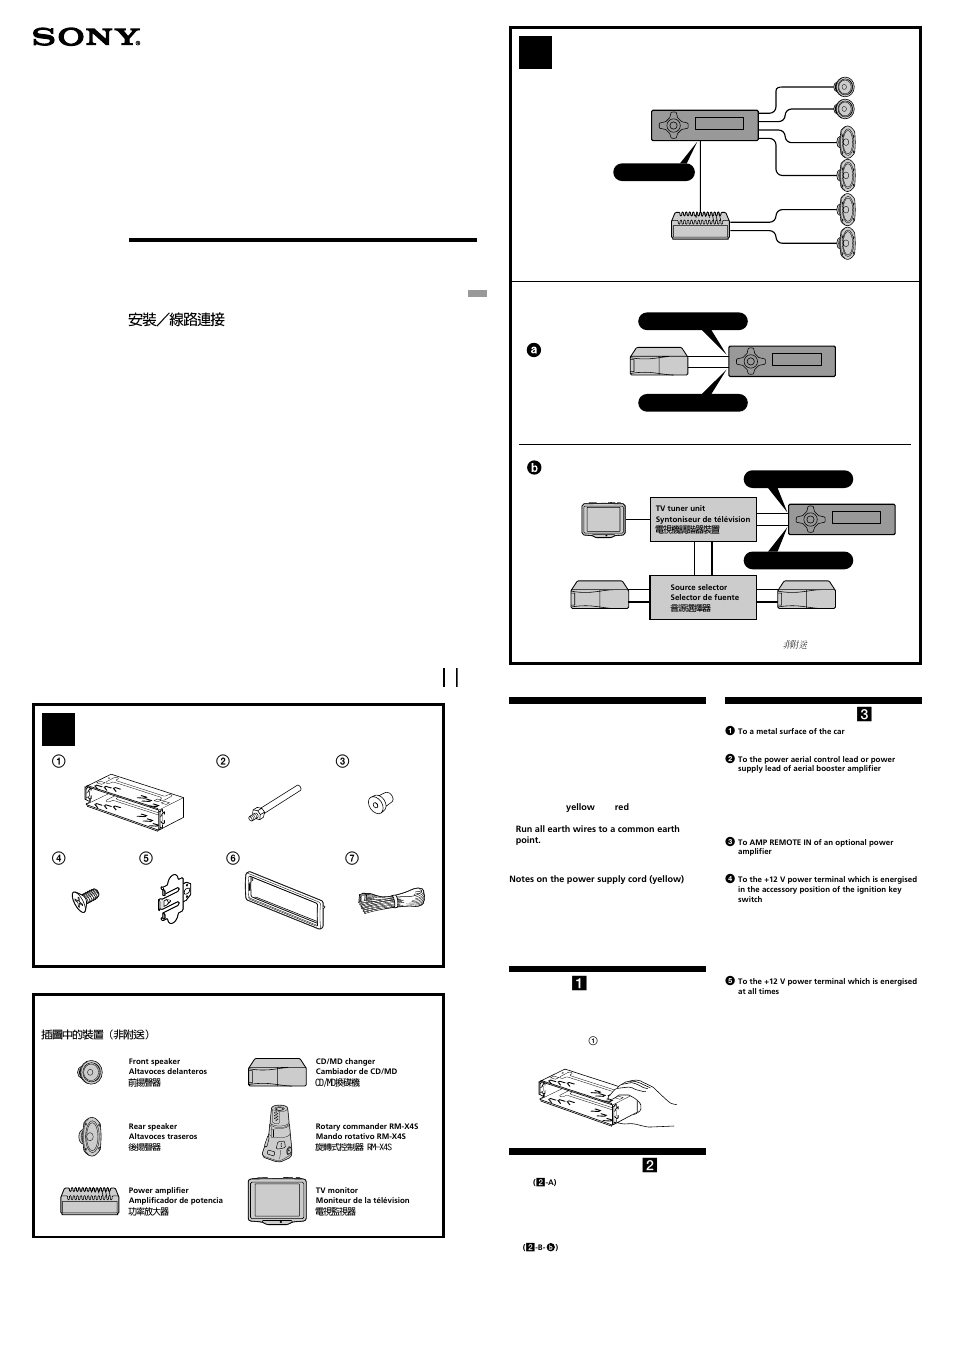 sony xr ca620x page1?resize\=665%2C945 alpine stereo wiring diagram alpine wiring diagrams sony stereo wire harness diagram at mifinder.co